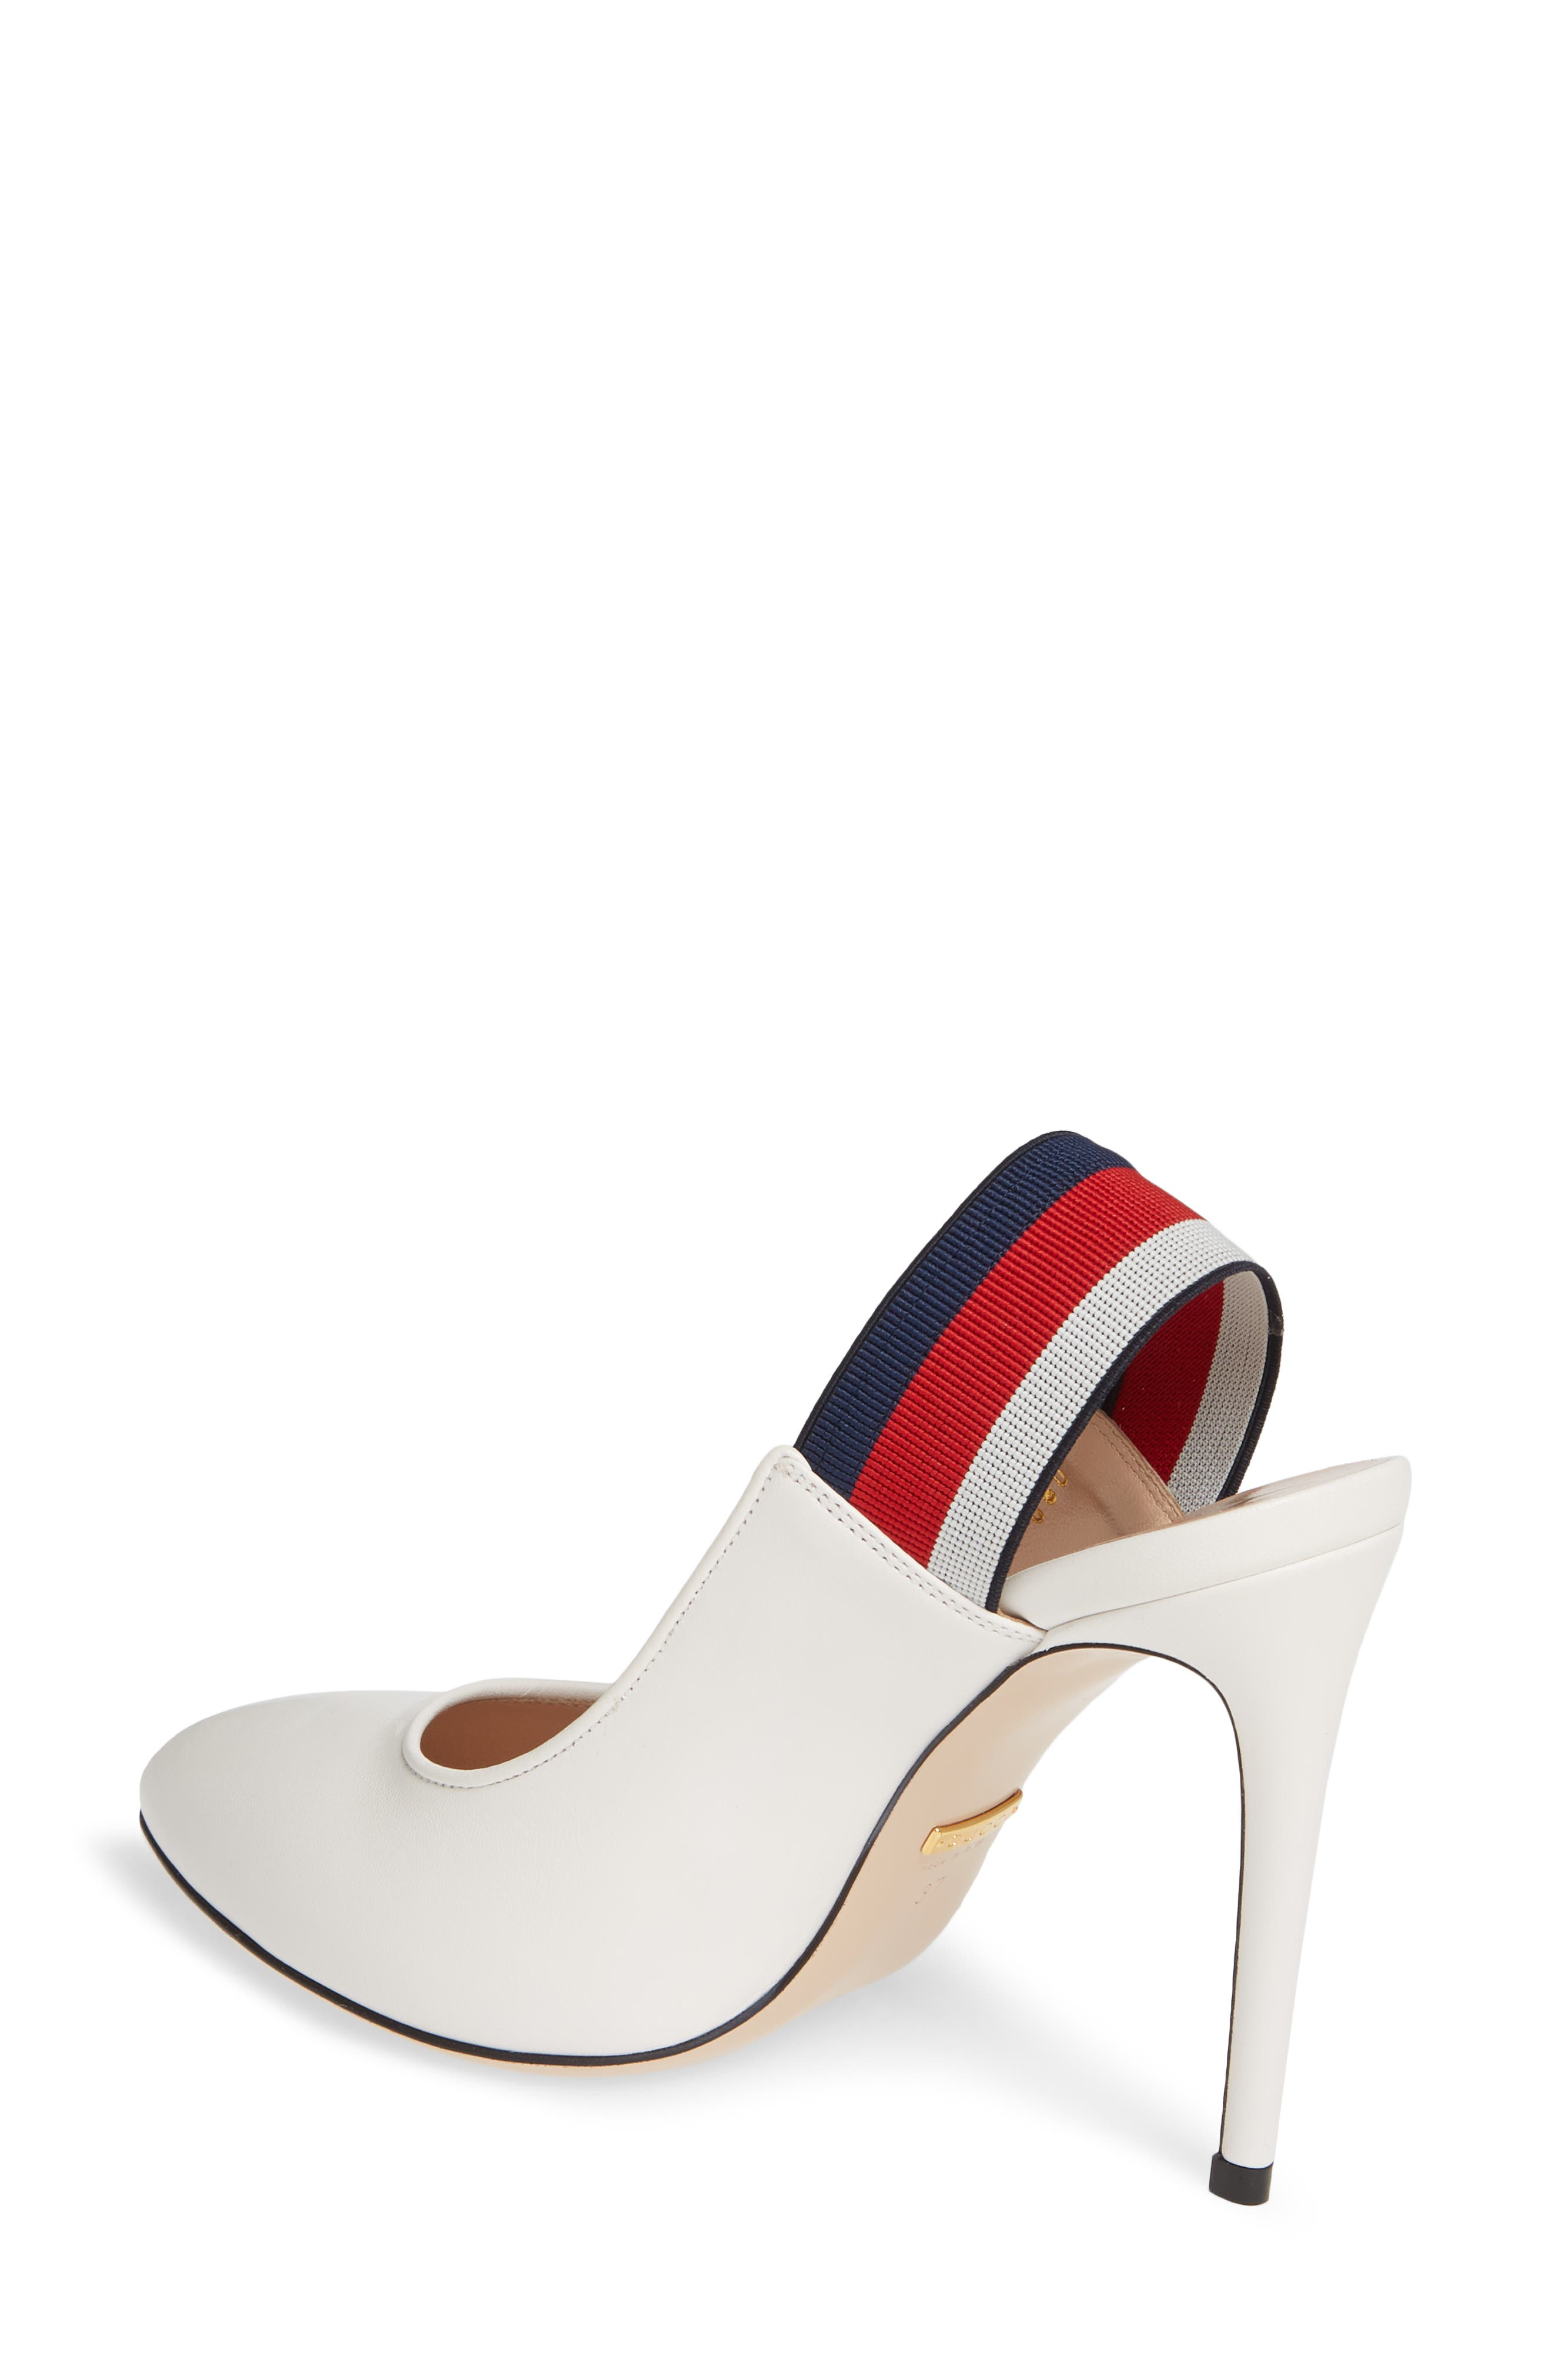 GUCCI,                             Sylvie Bee Slingback Pump,                             Alternate thumbnail 2, color,                             WHITE/ RED